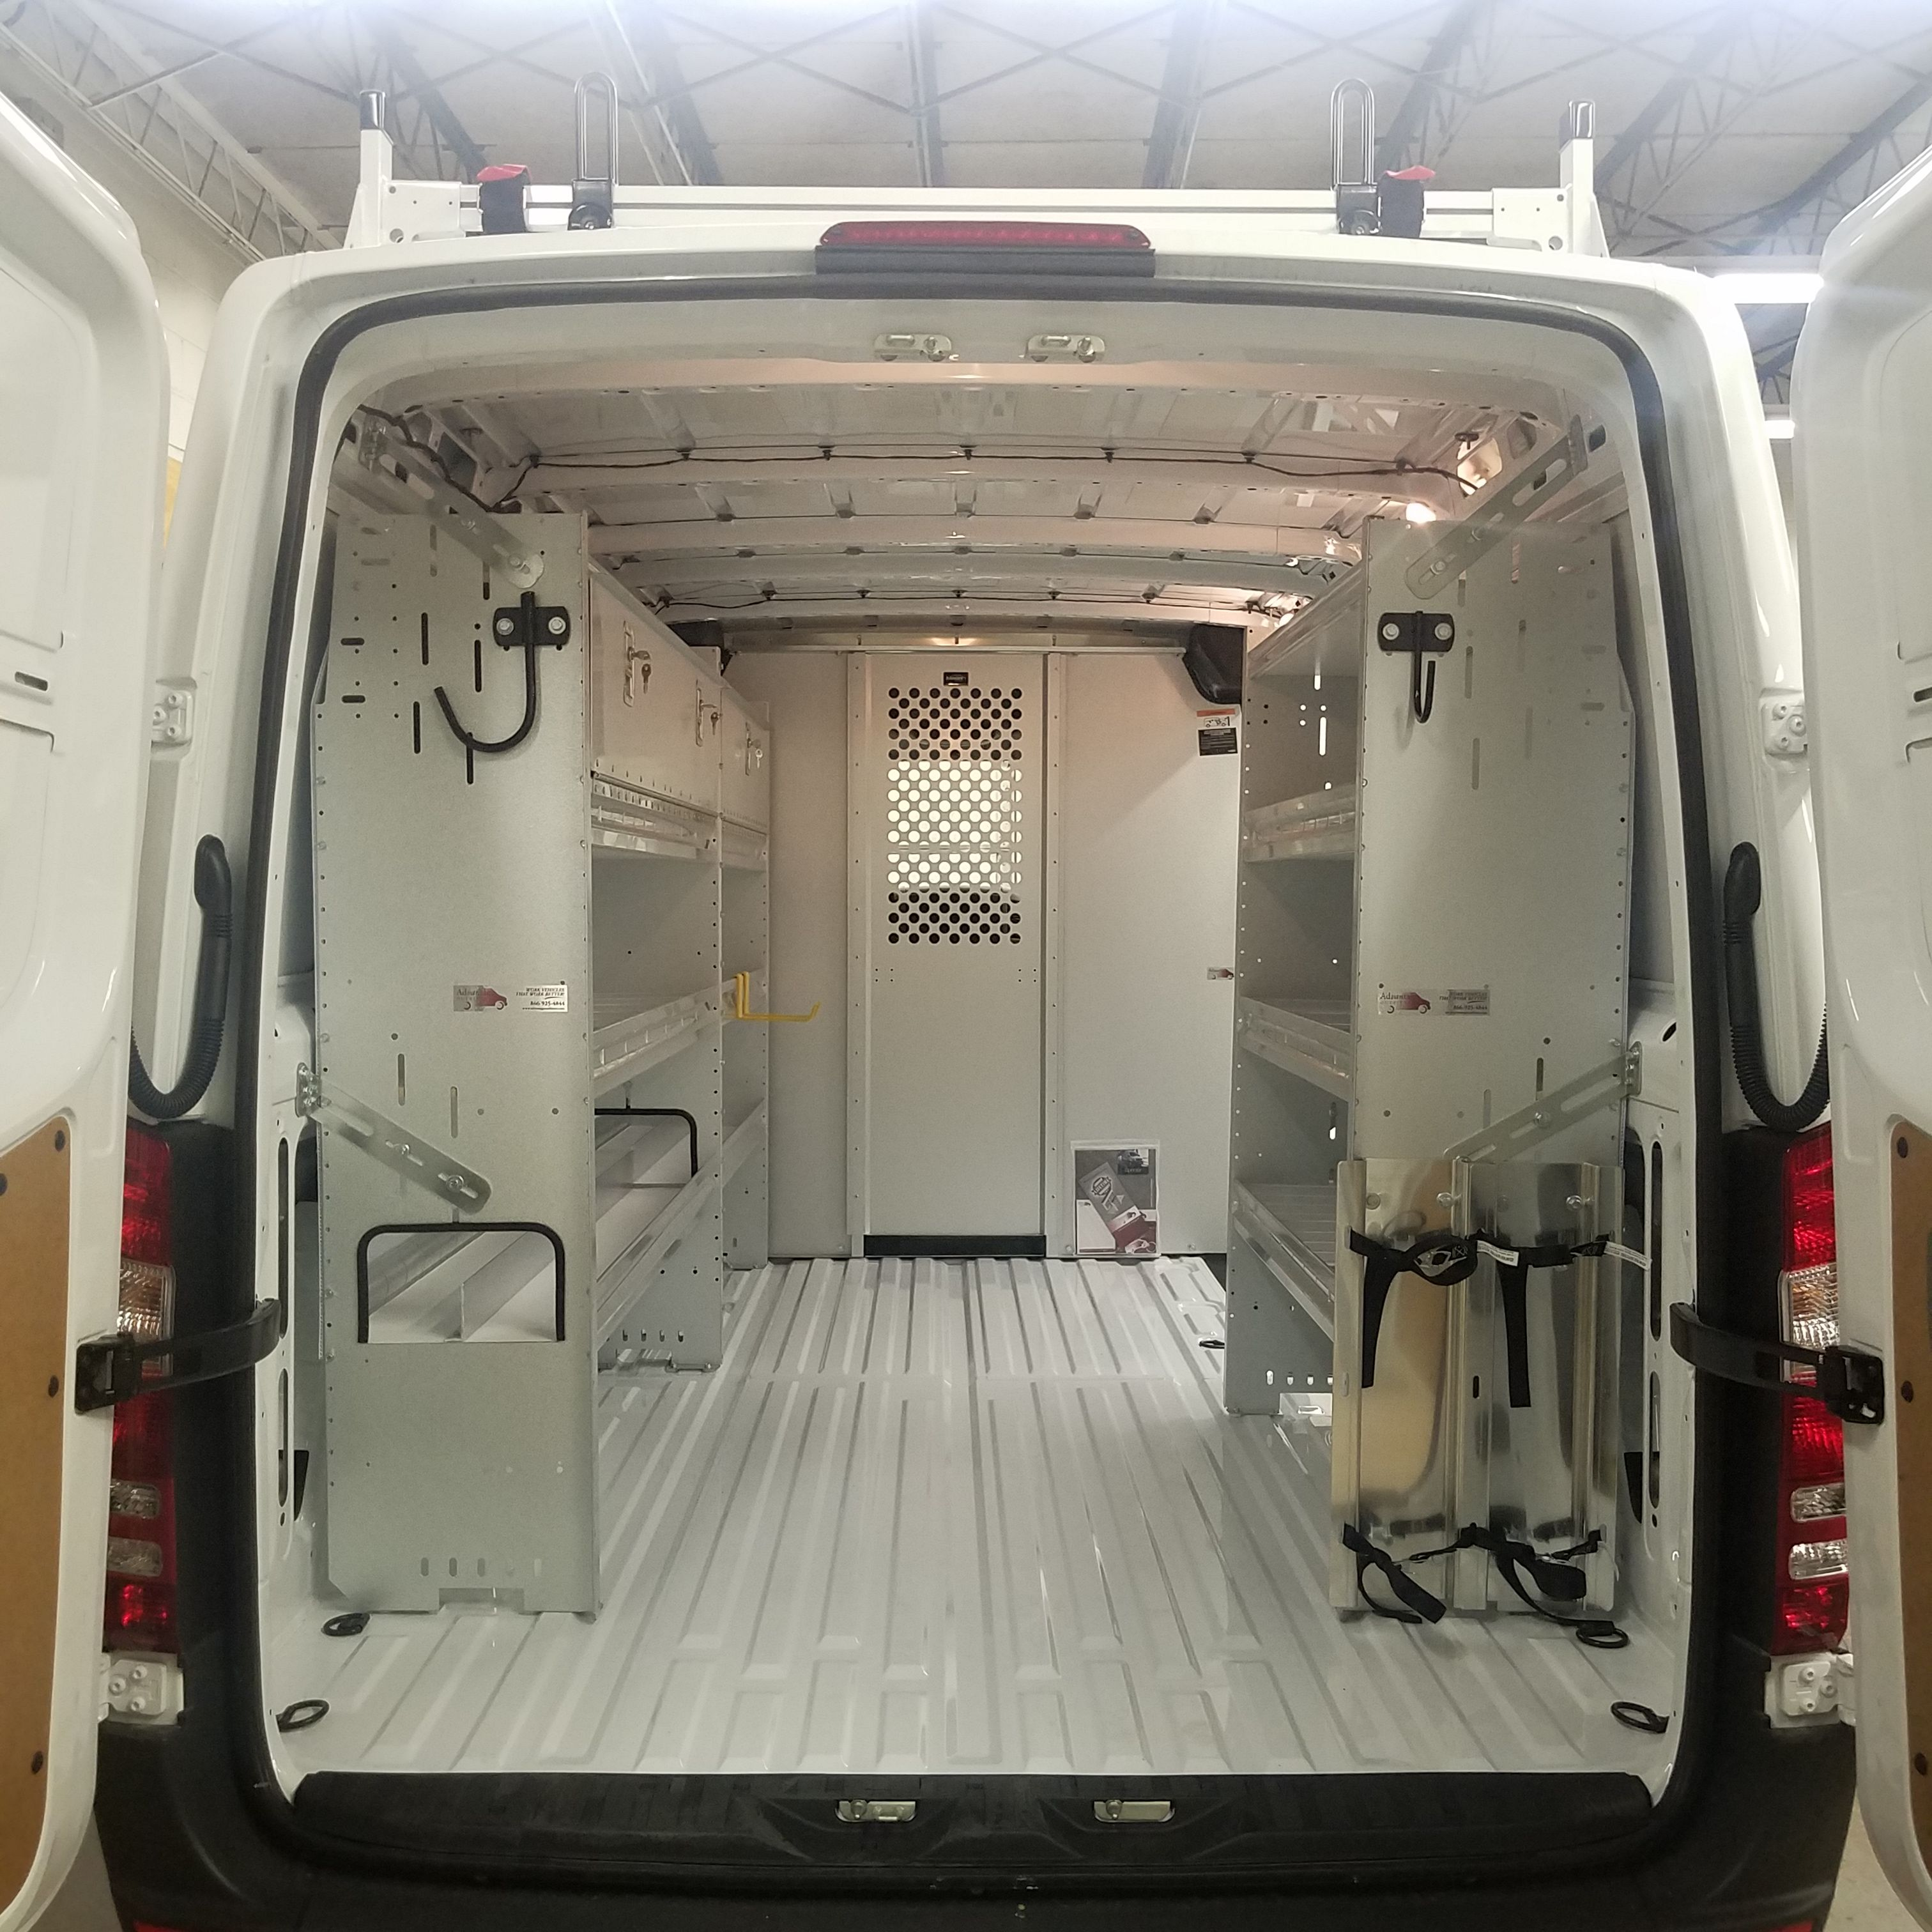 Check Out Our Van Shelving Packages Including Racks And Bins For